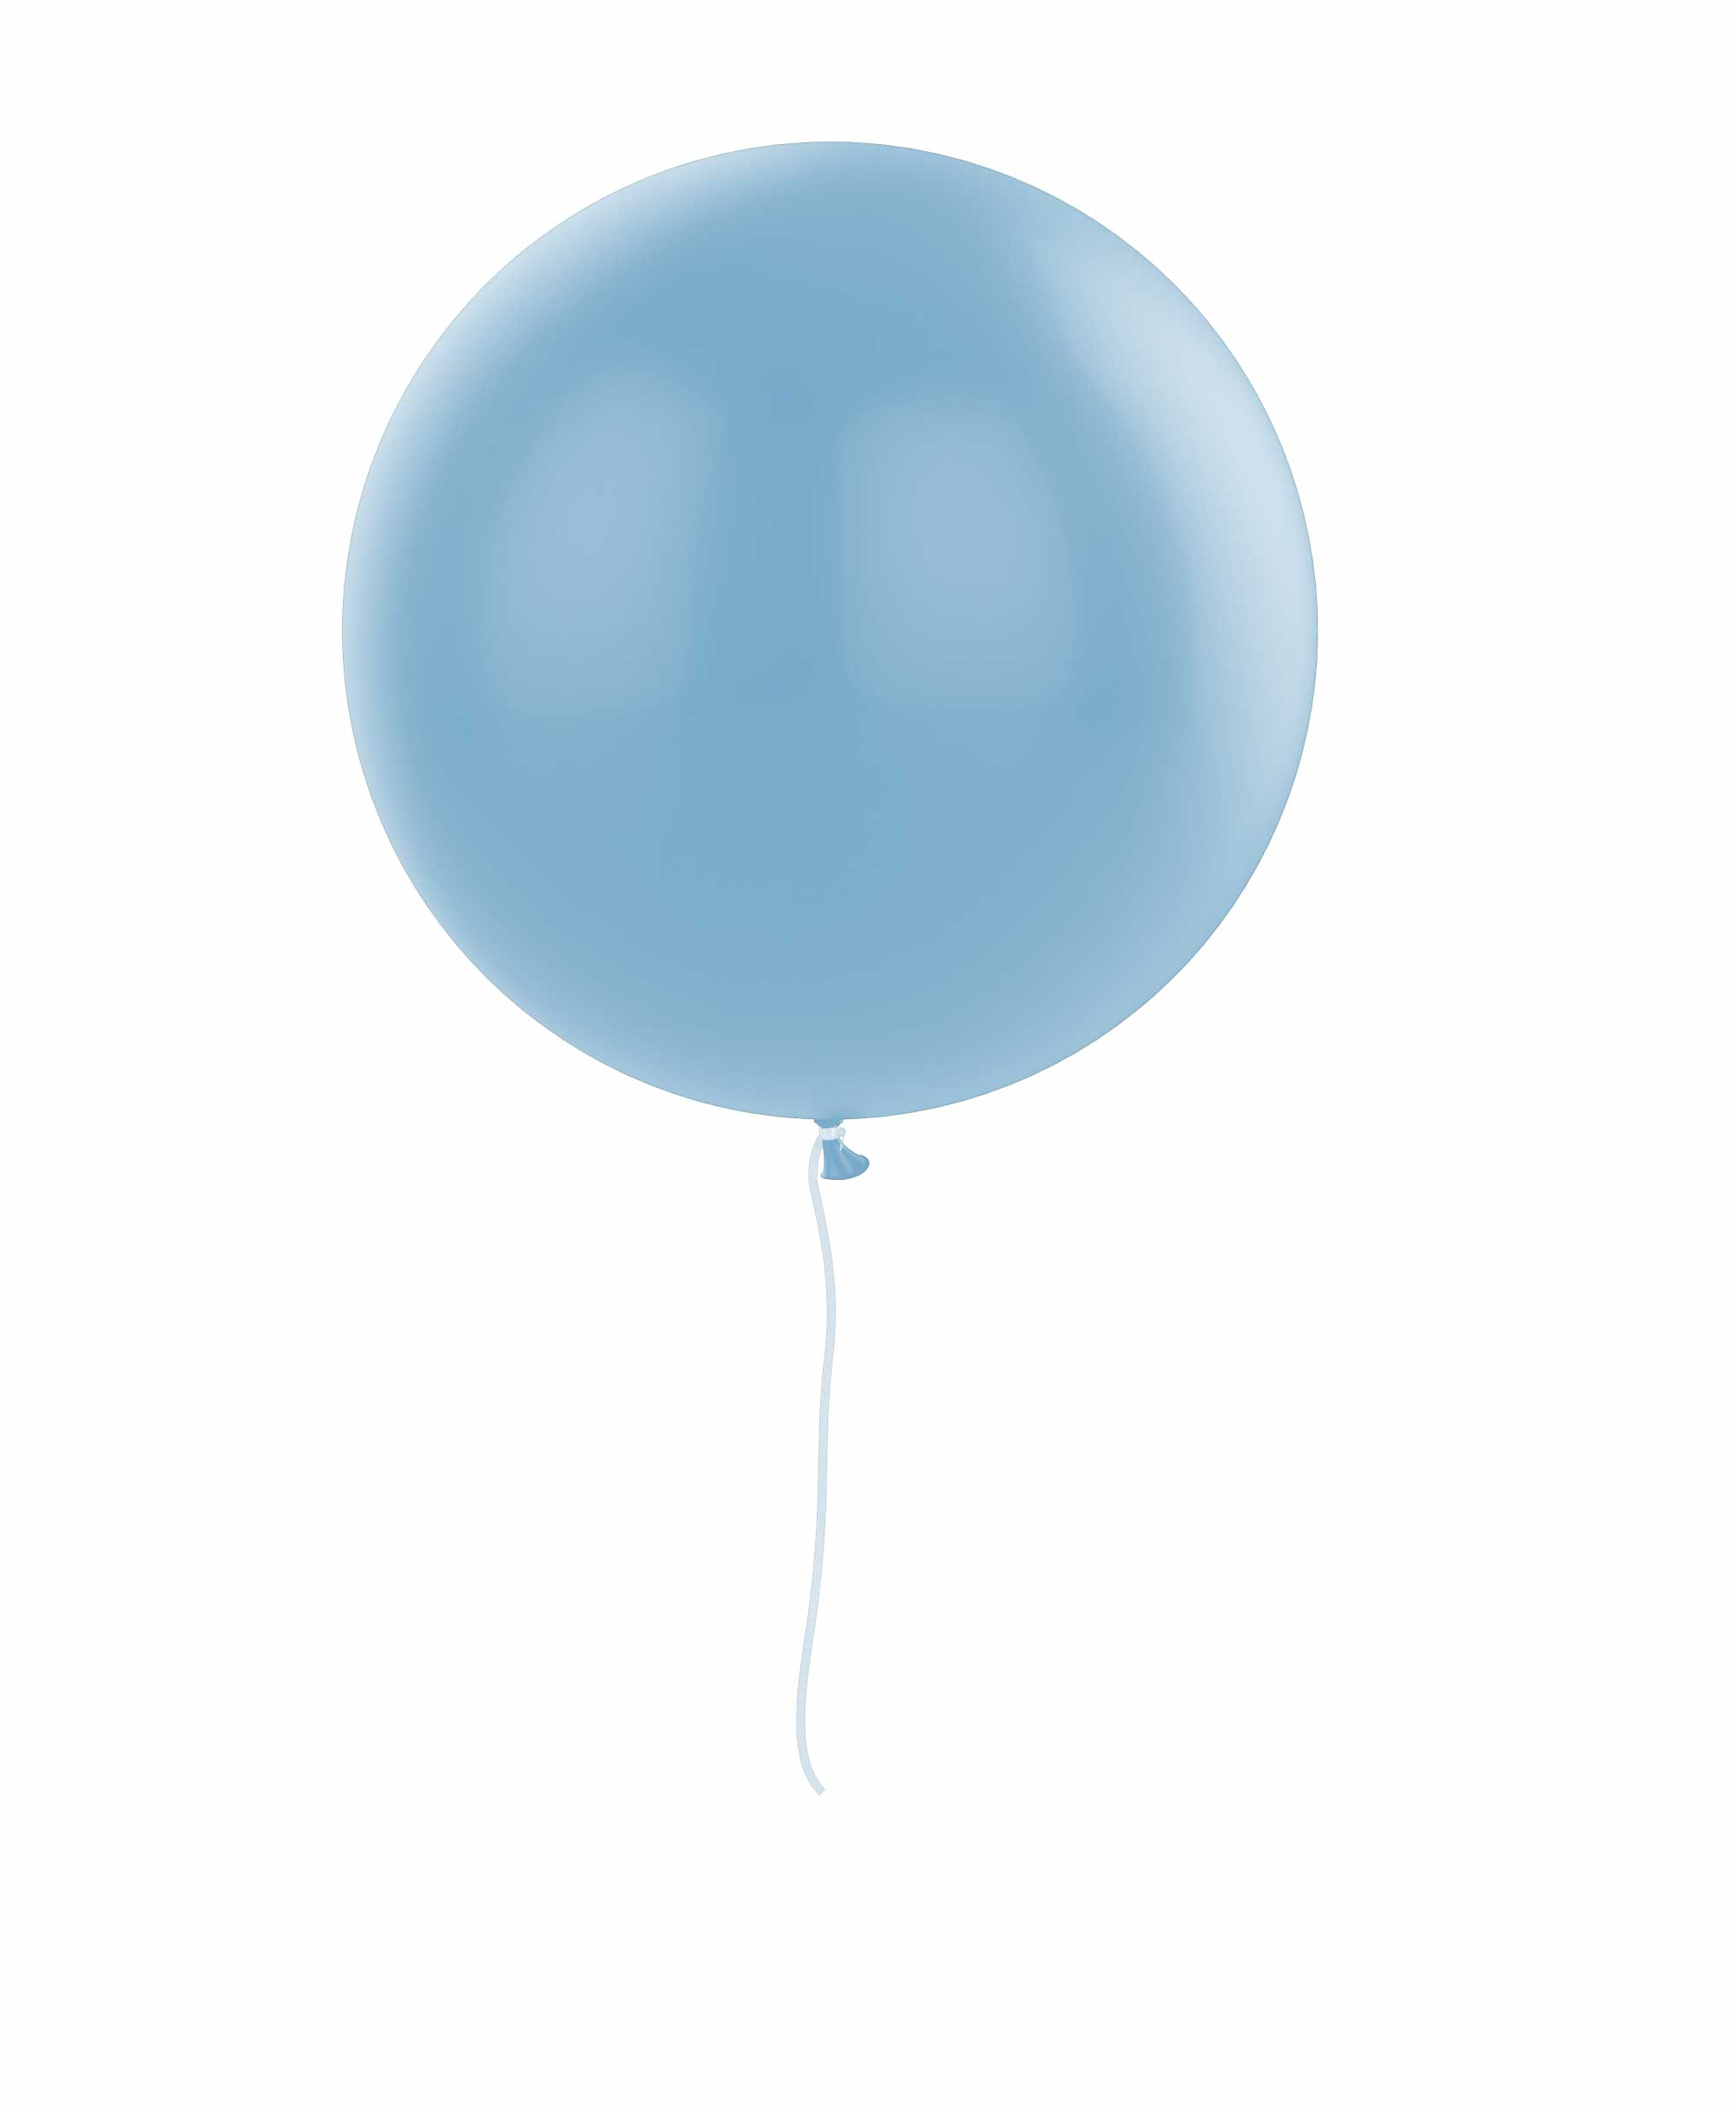 "Light blue balloon 36"" - Elephant theme"